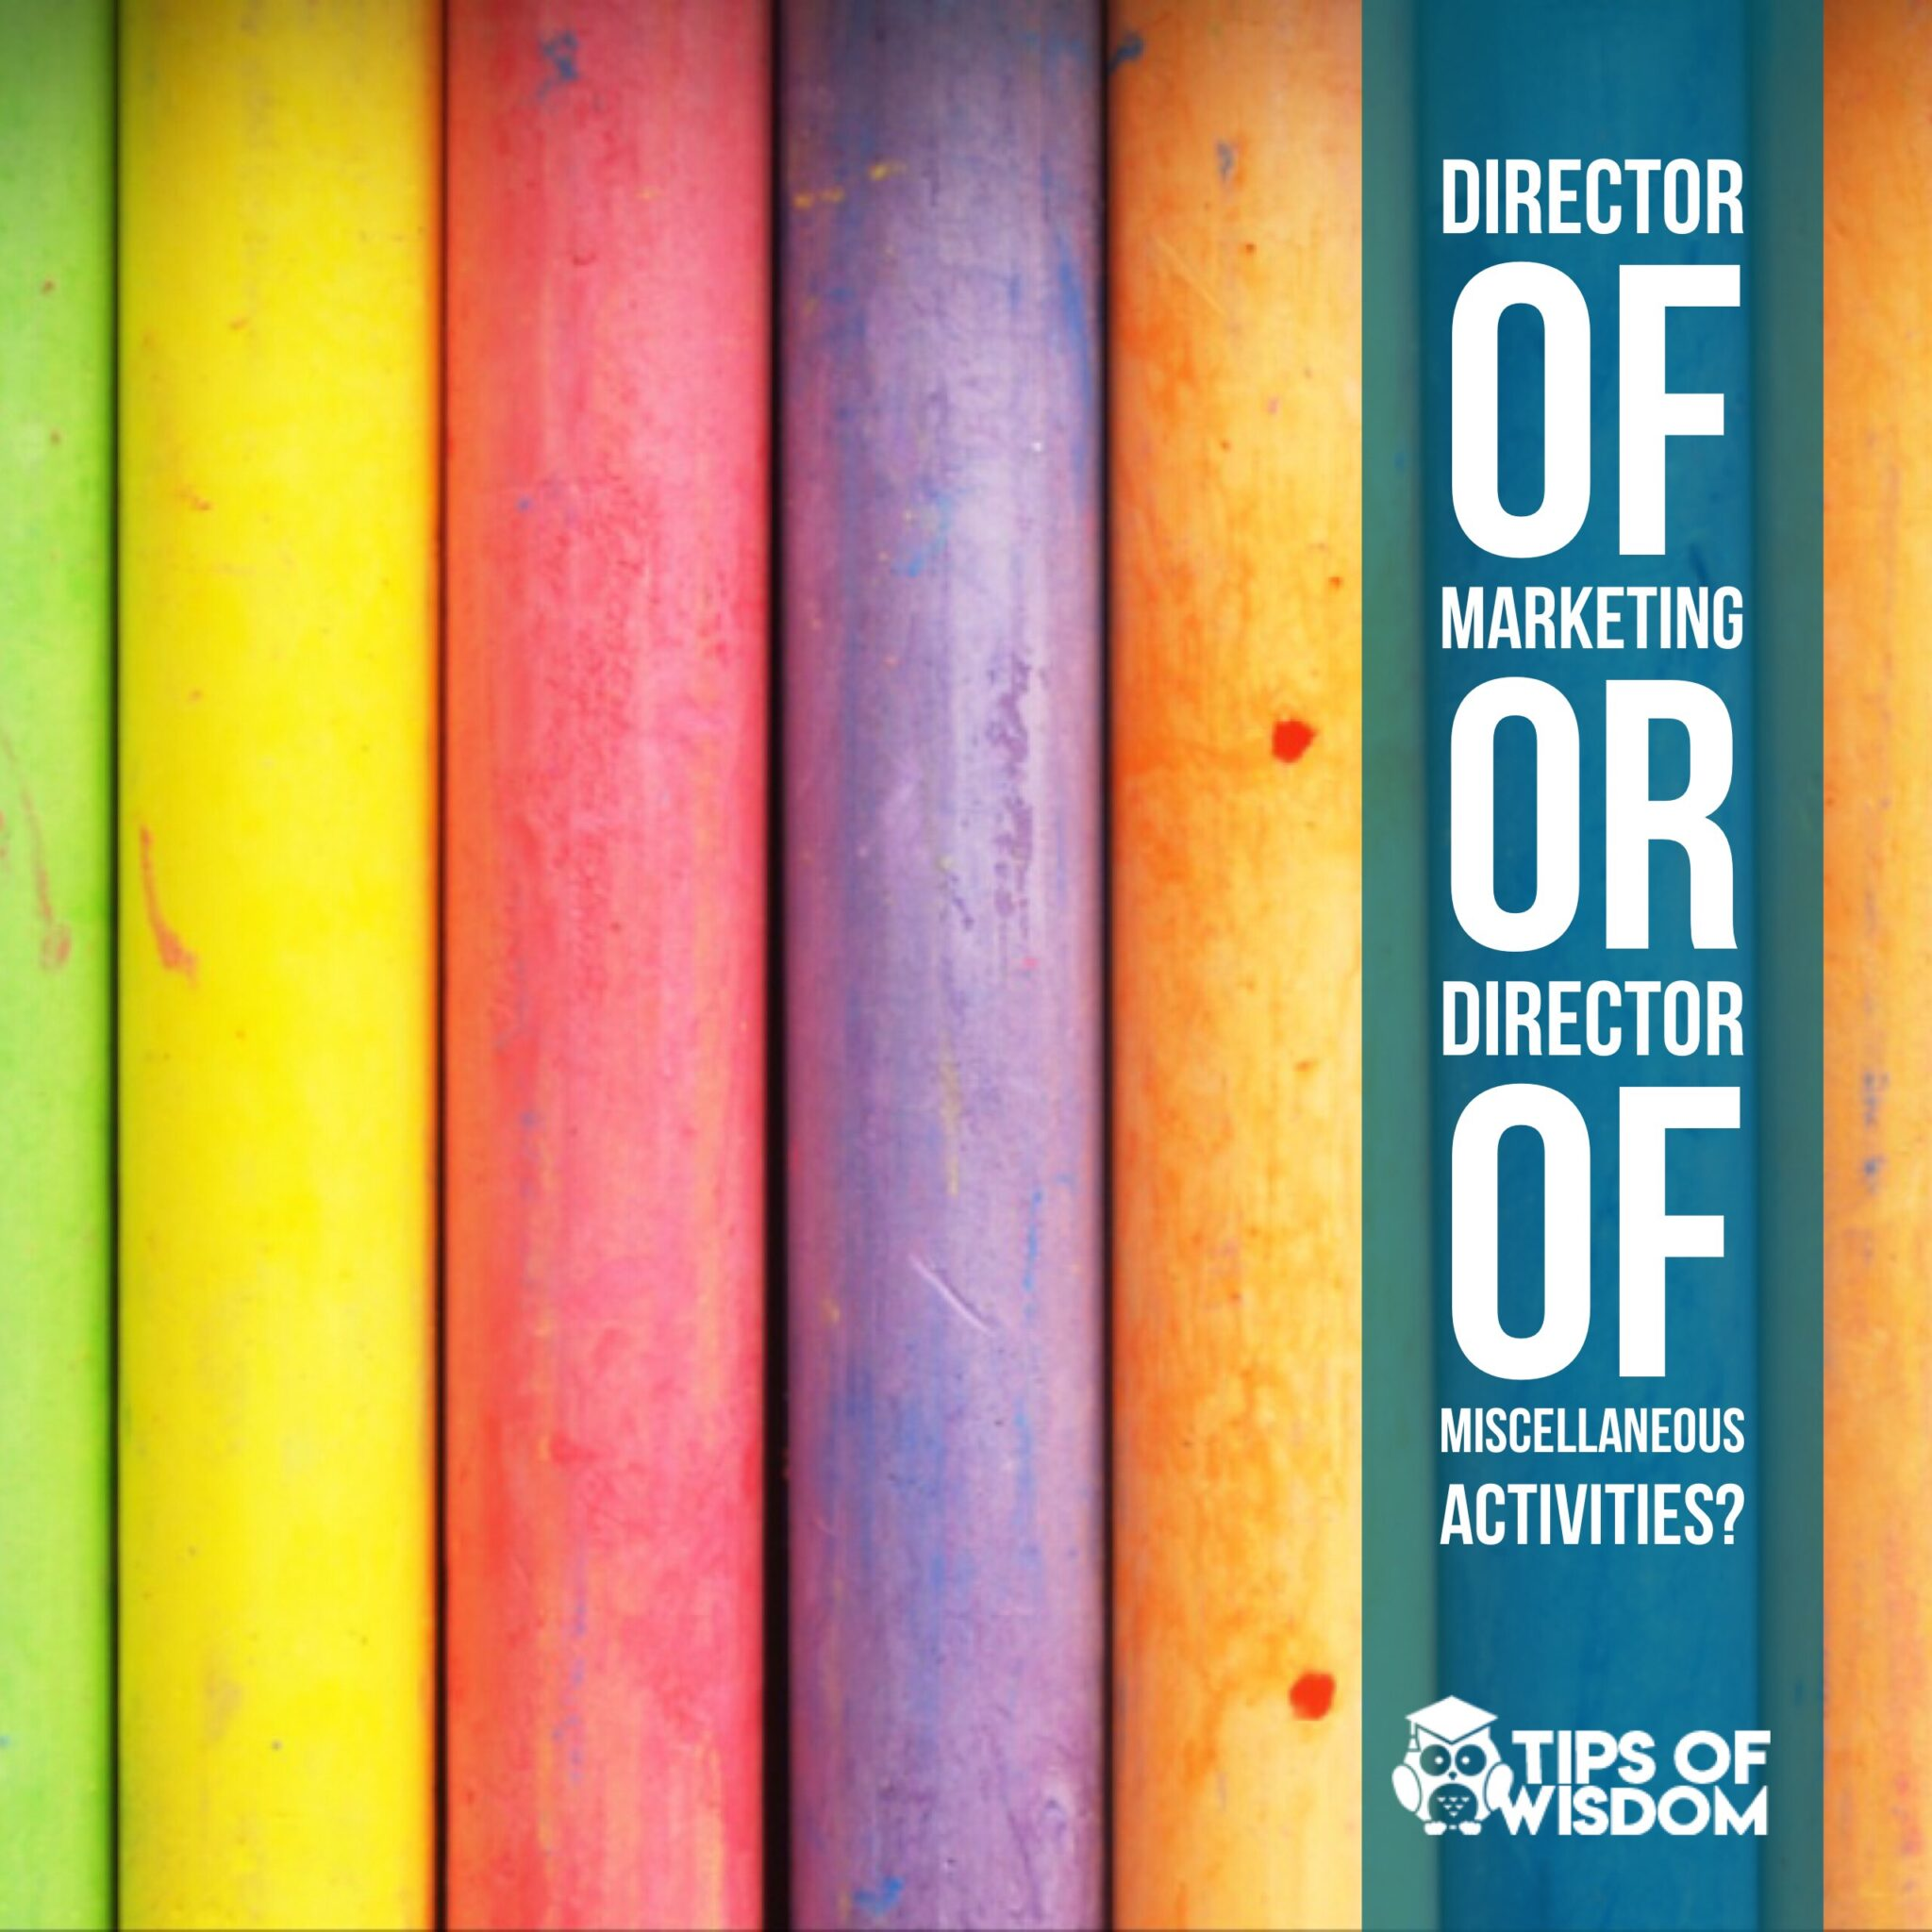 Director of Marketing or Director of Miscellaneous Activities?